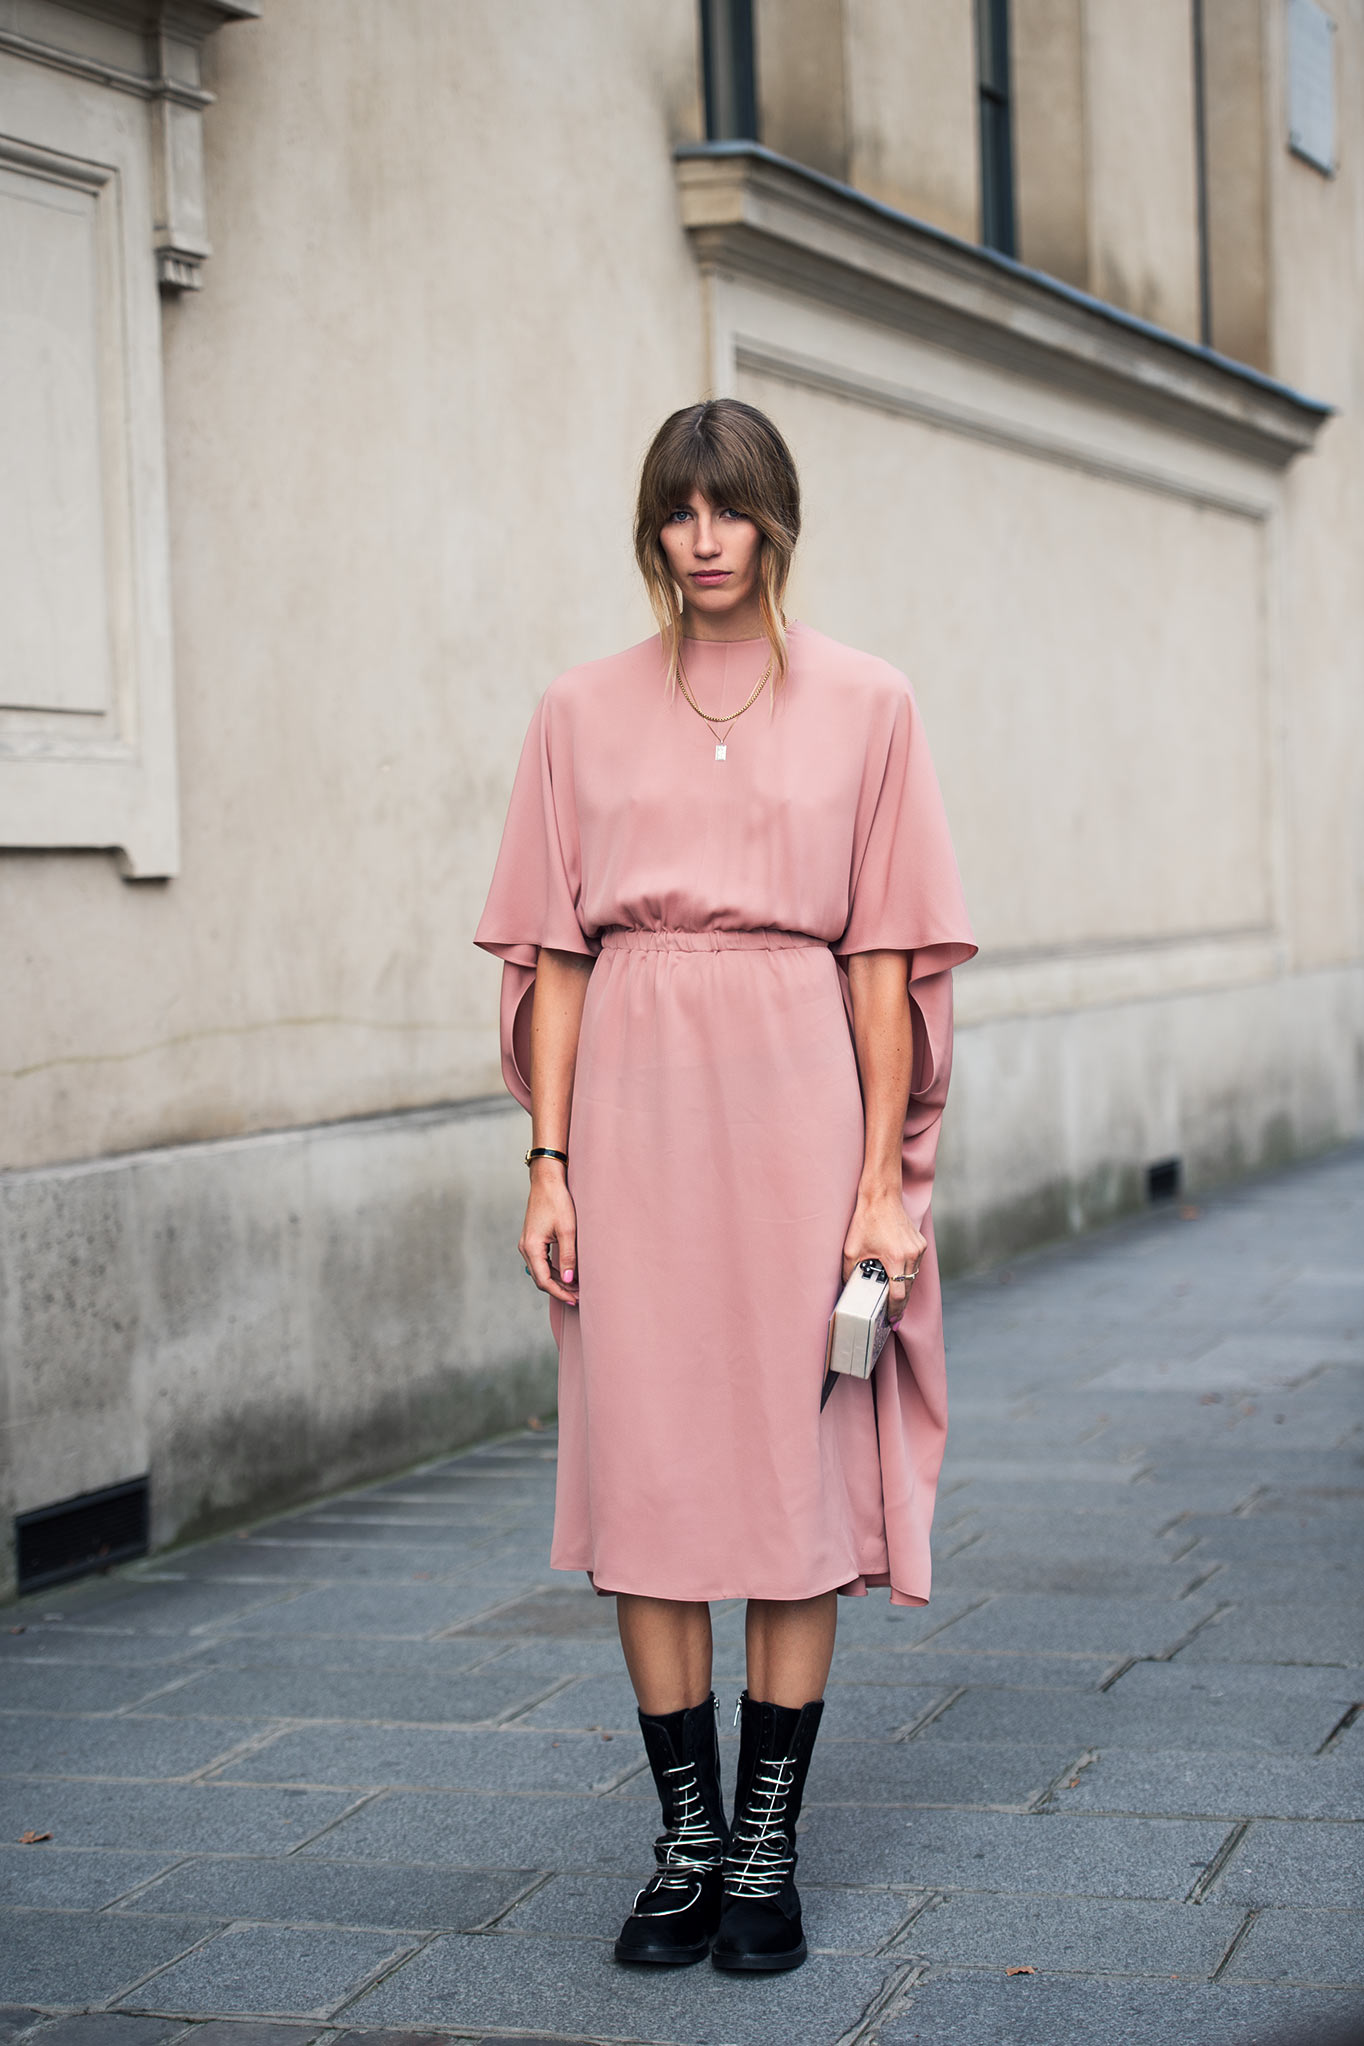 Veronica Heilbrunner at Milan Fashion Week